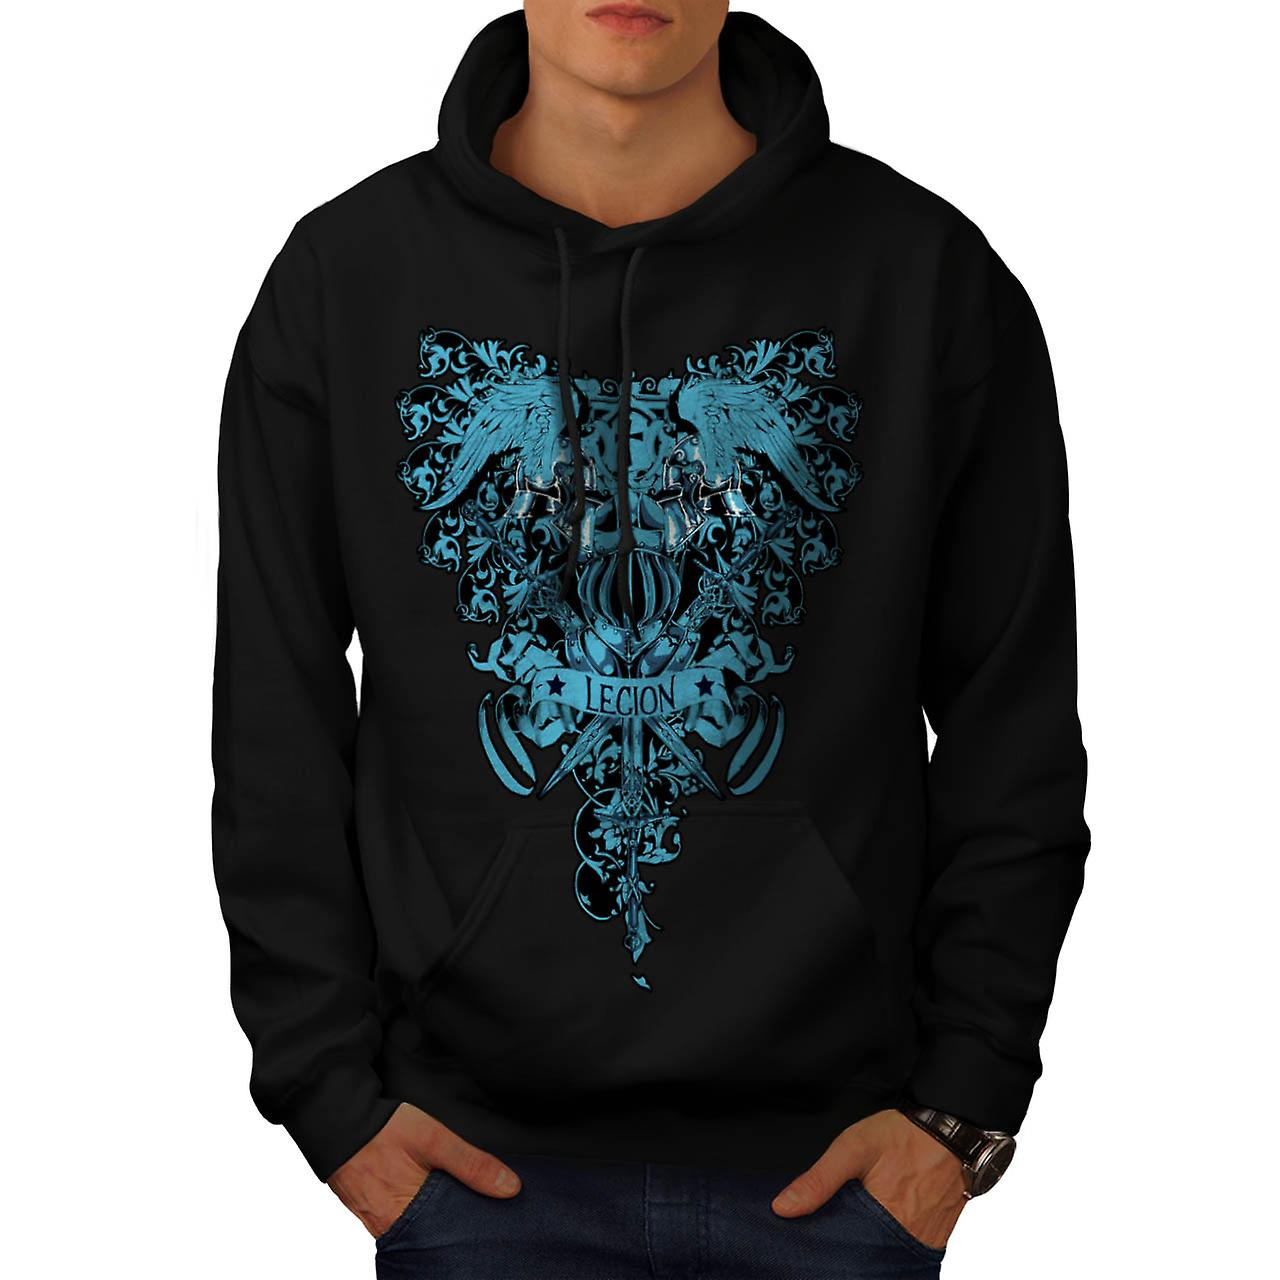 Kingdom Legion Cross Dead Symbol Men Black Hoodie | Wellcoda